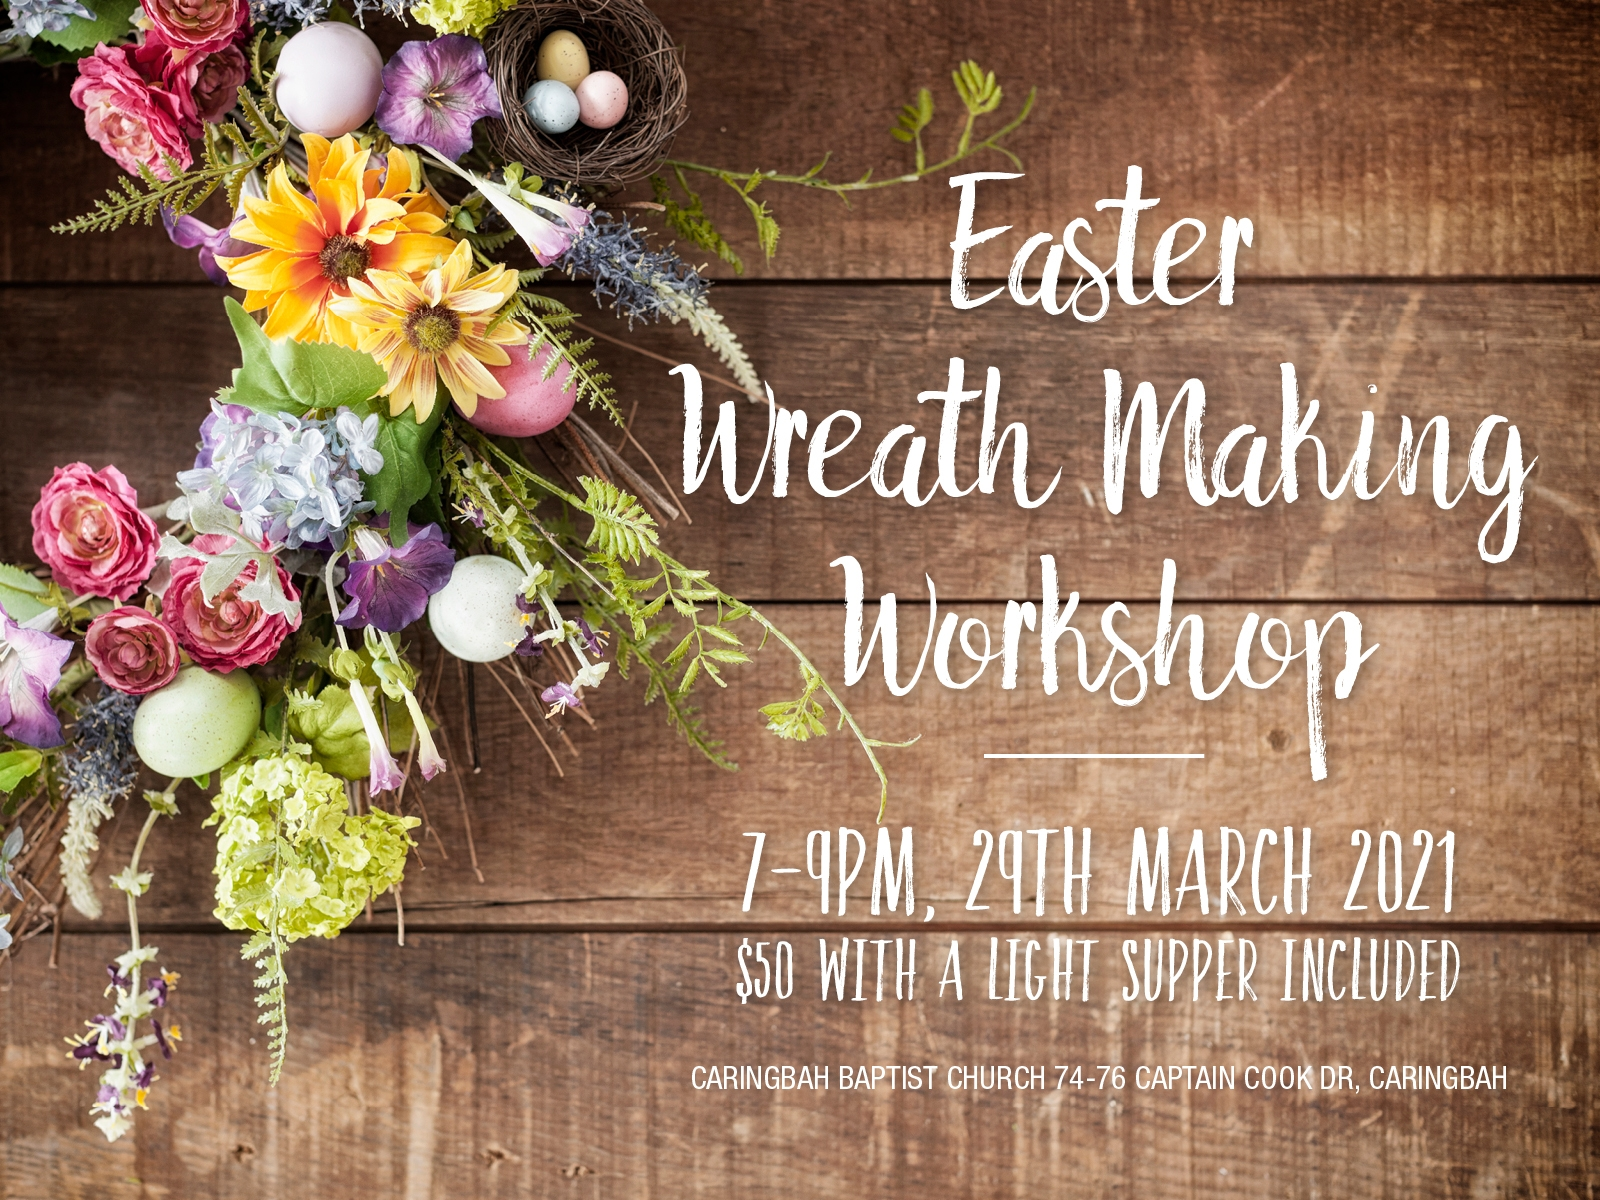 CBC Easter Wreath Making Workshop